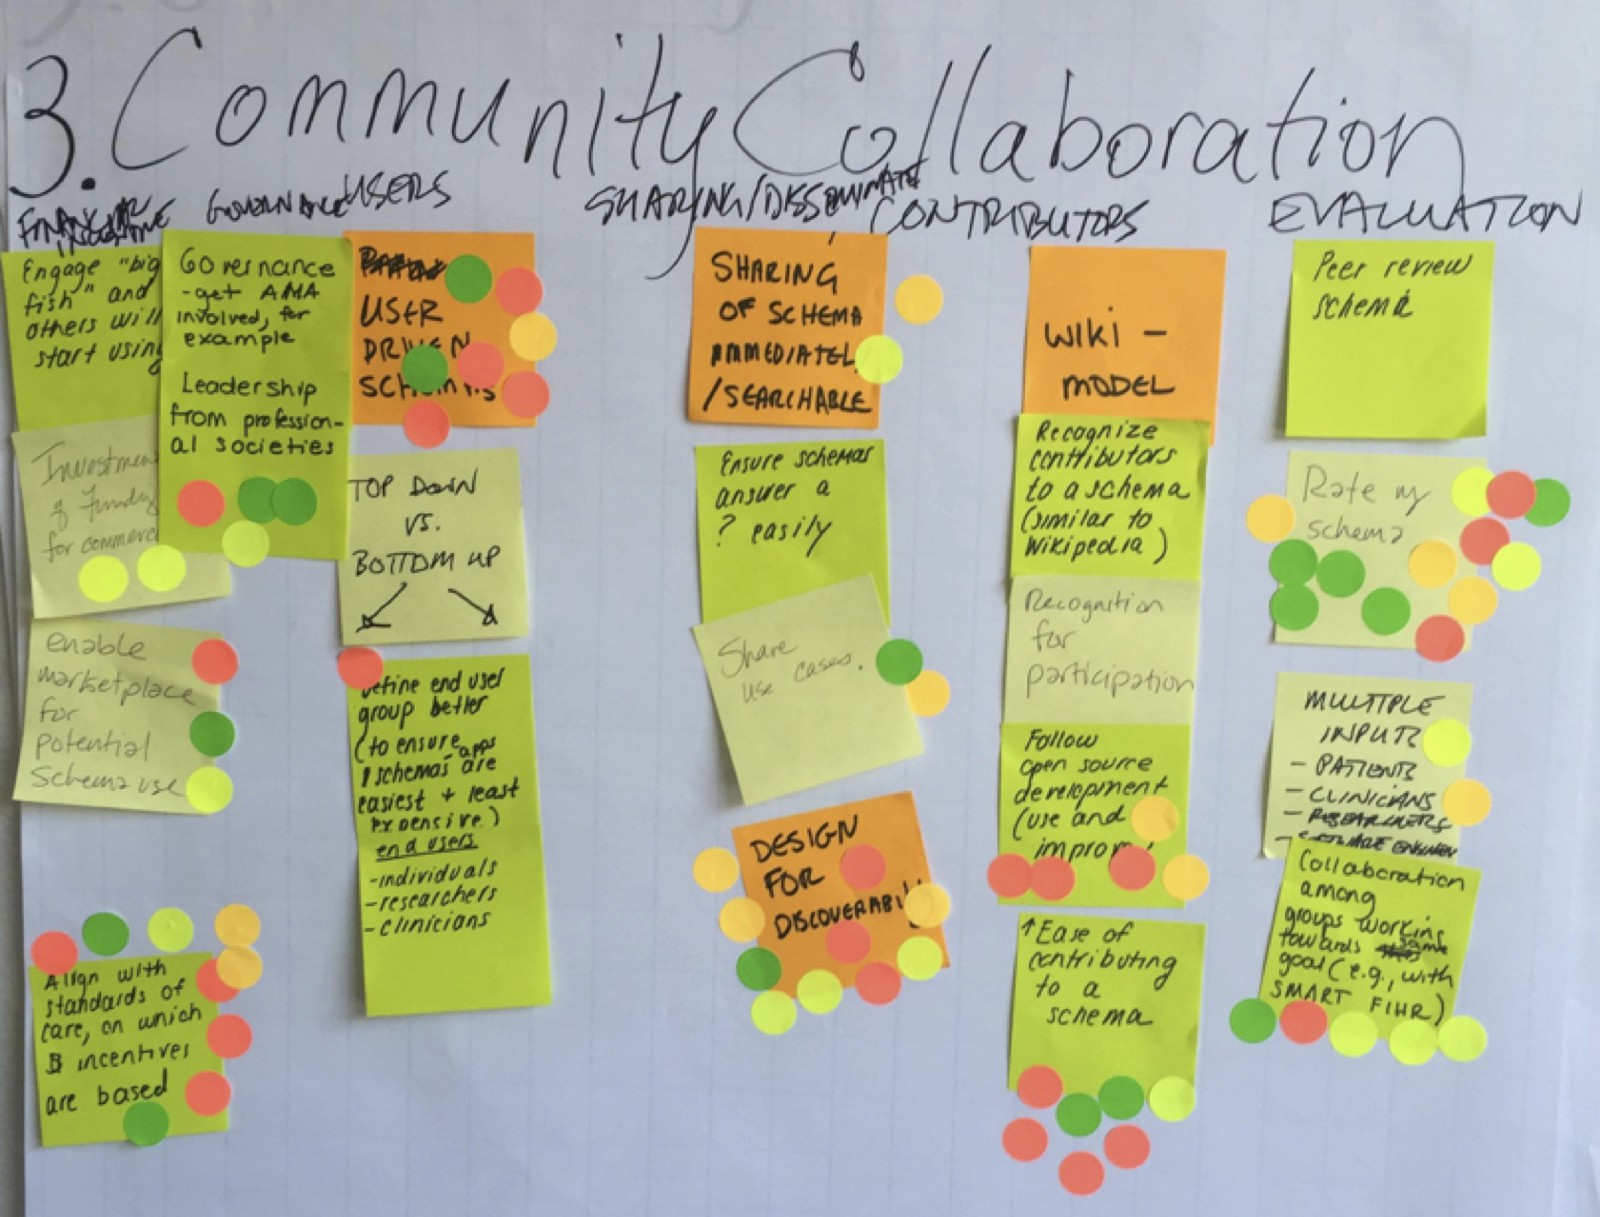 Design Thinking Methods Affinity Diagrams Star Are Useful For Basic Brainstorming About A Topic Or Voting Dots